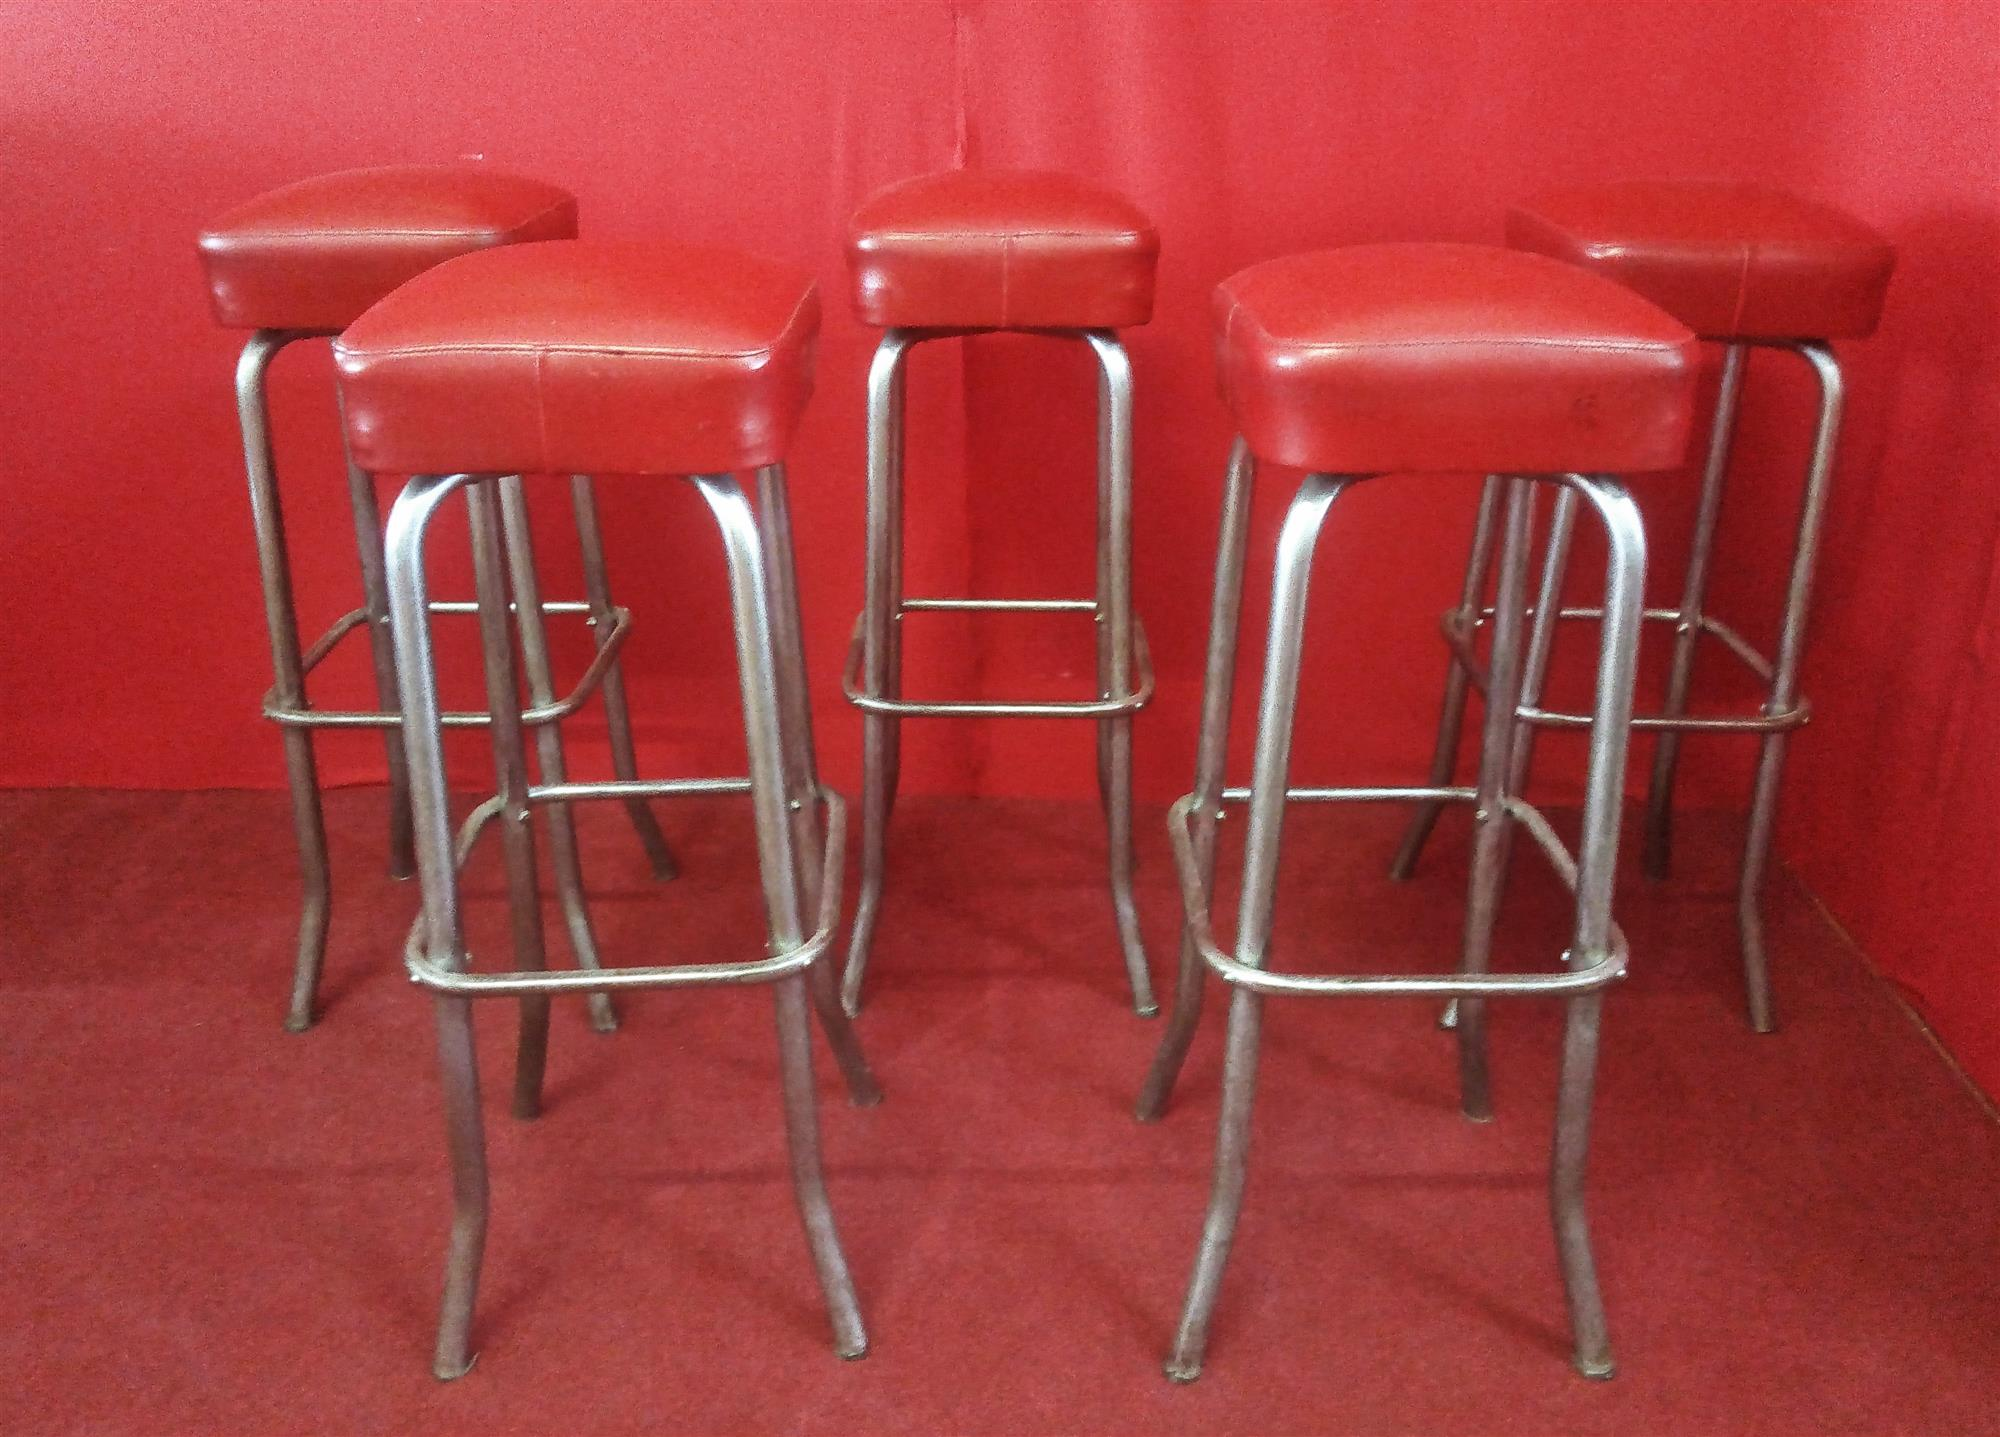 Group of 5 chromed metal stools